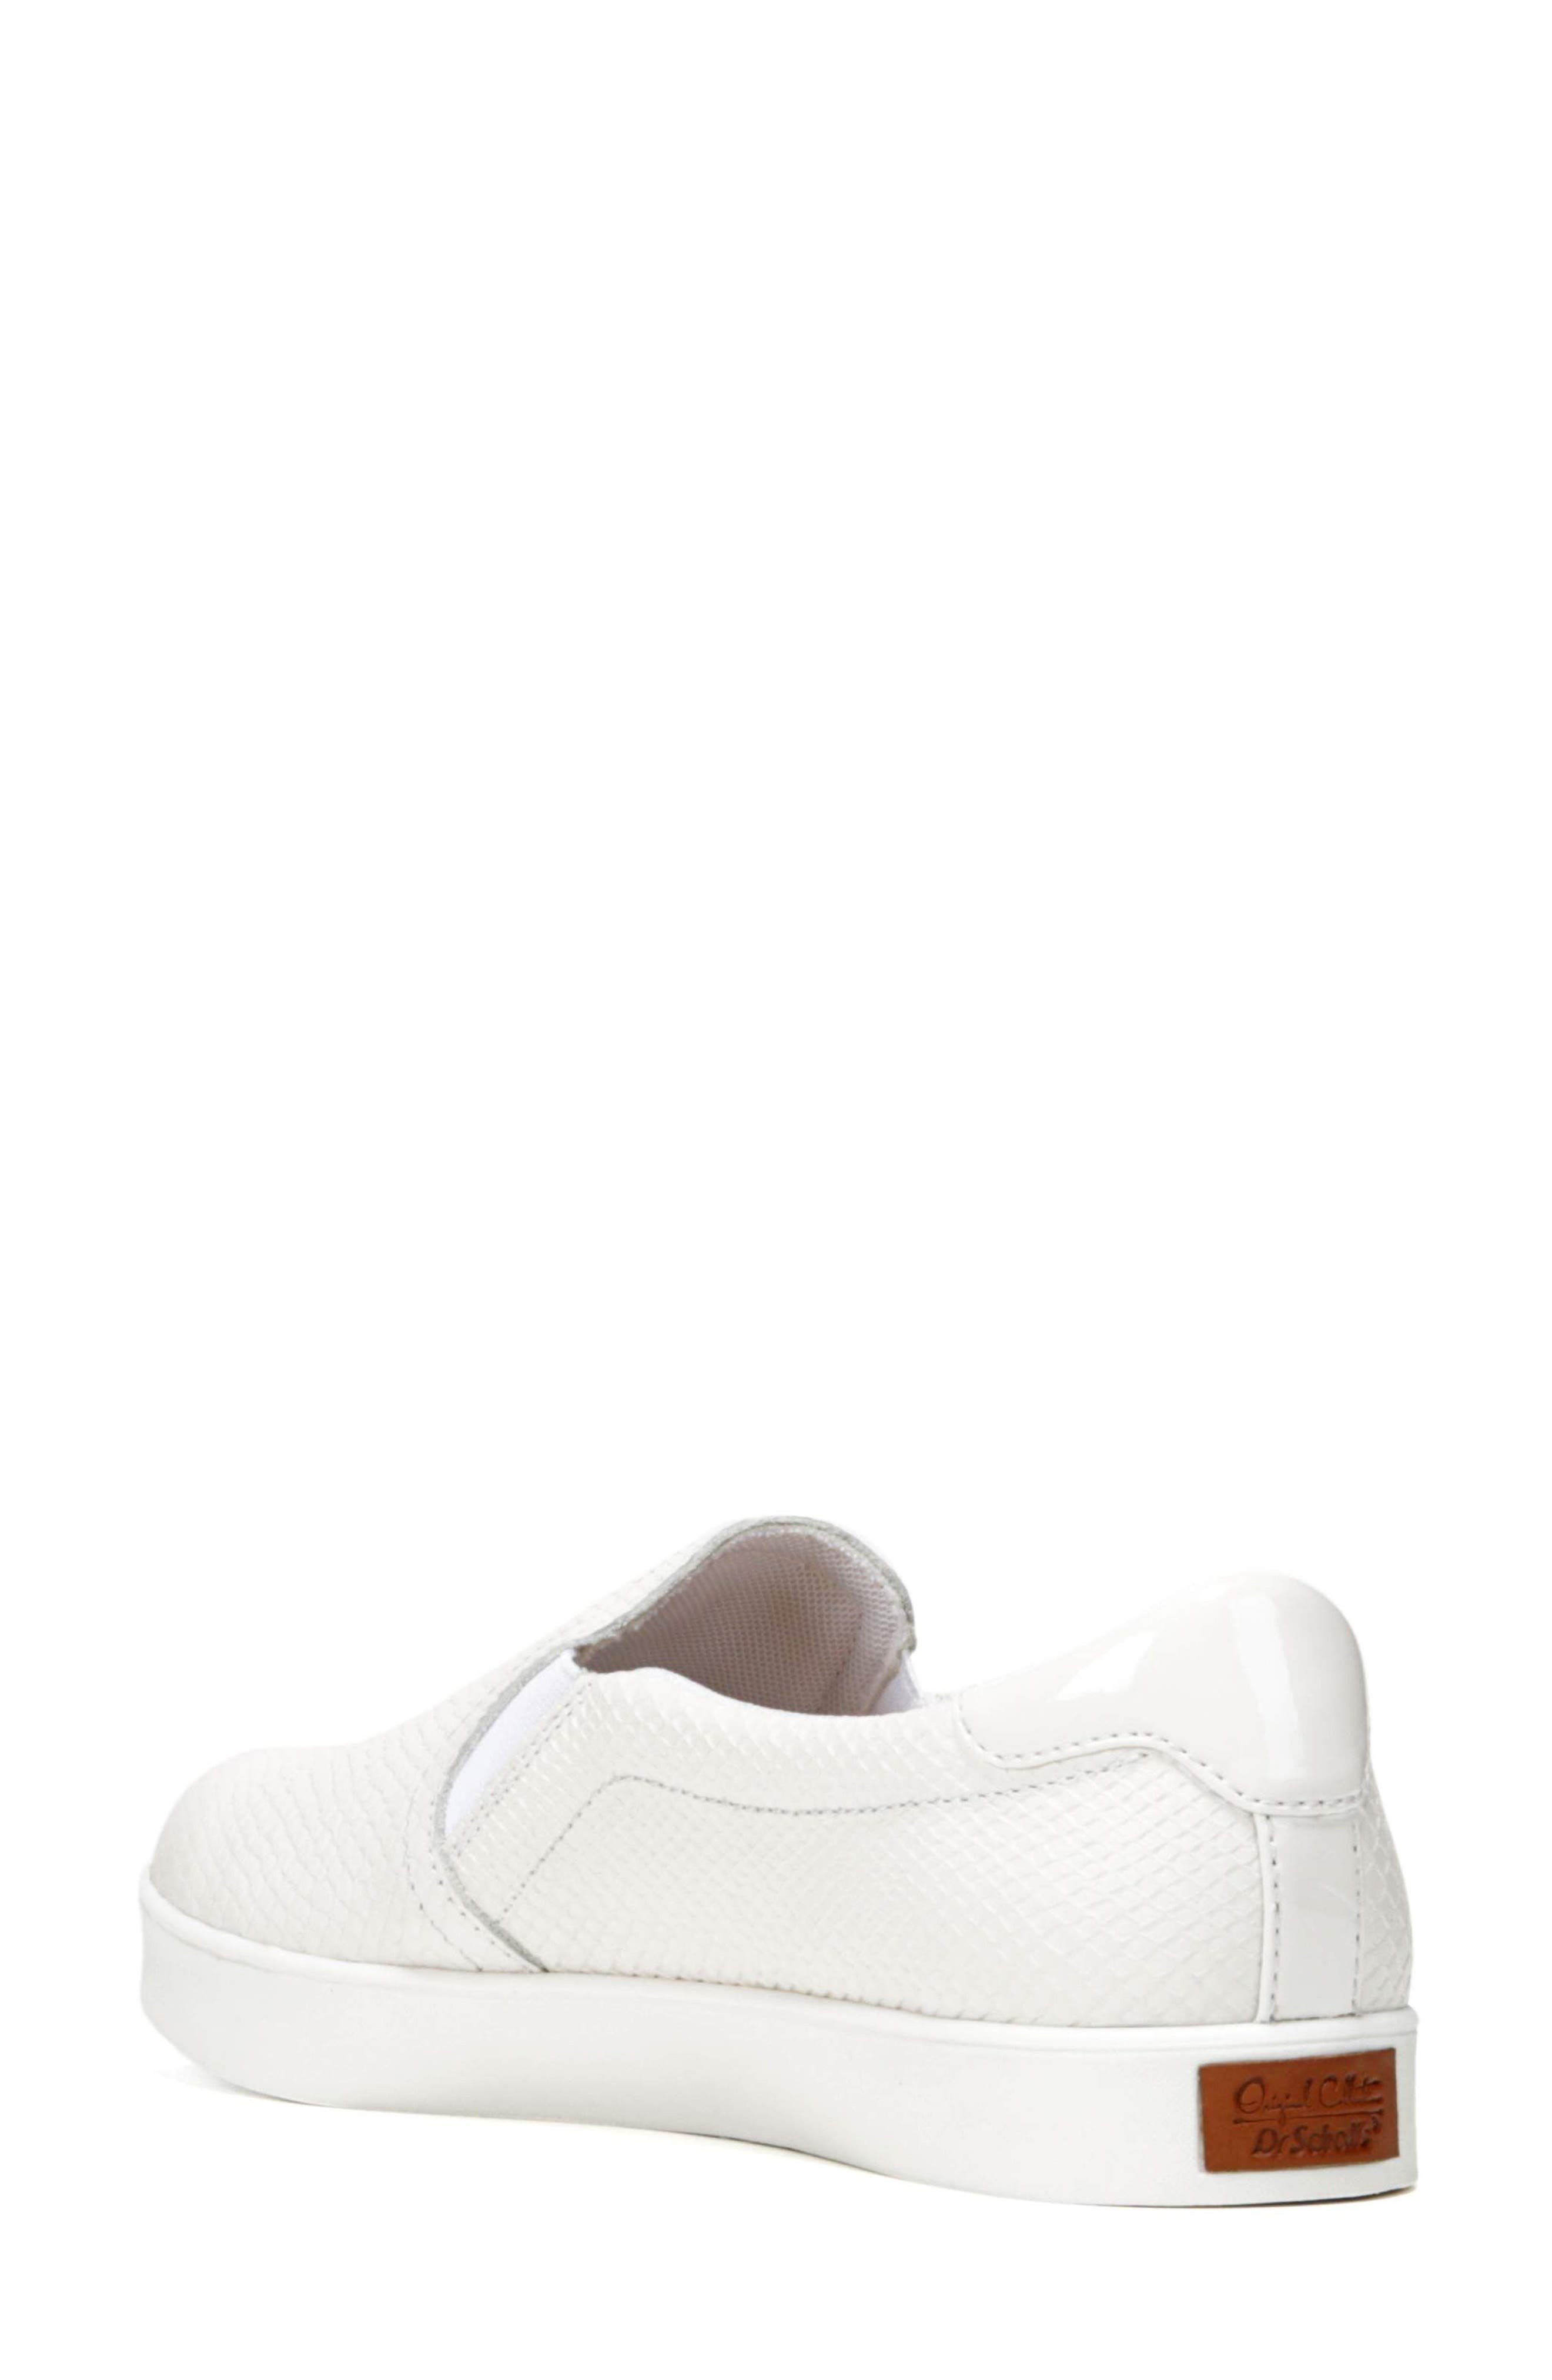 Original Collection 'Scout' Slip On Sneaker,                             Alternate thumbnail 2, color,                             GARDENIA LEATHER